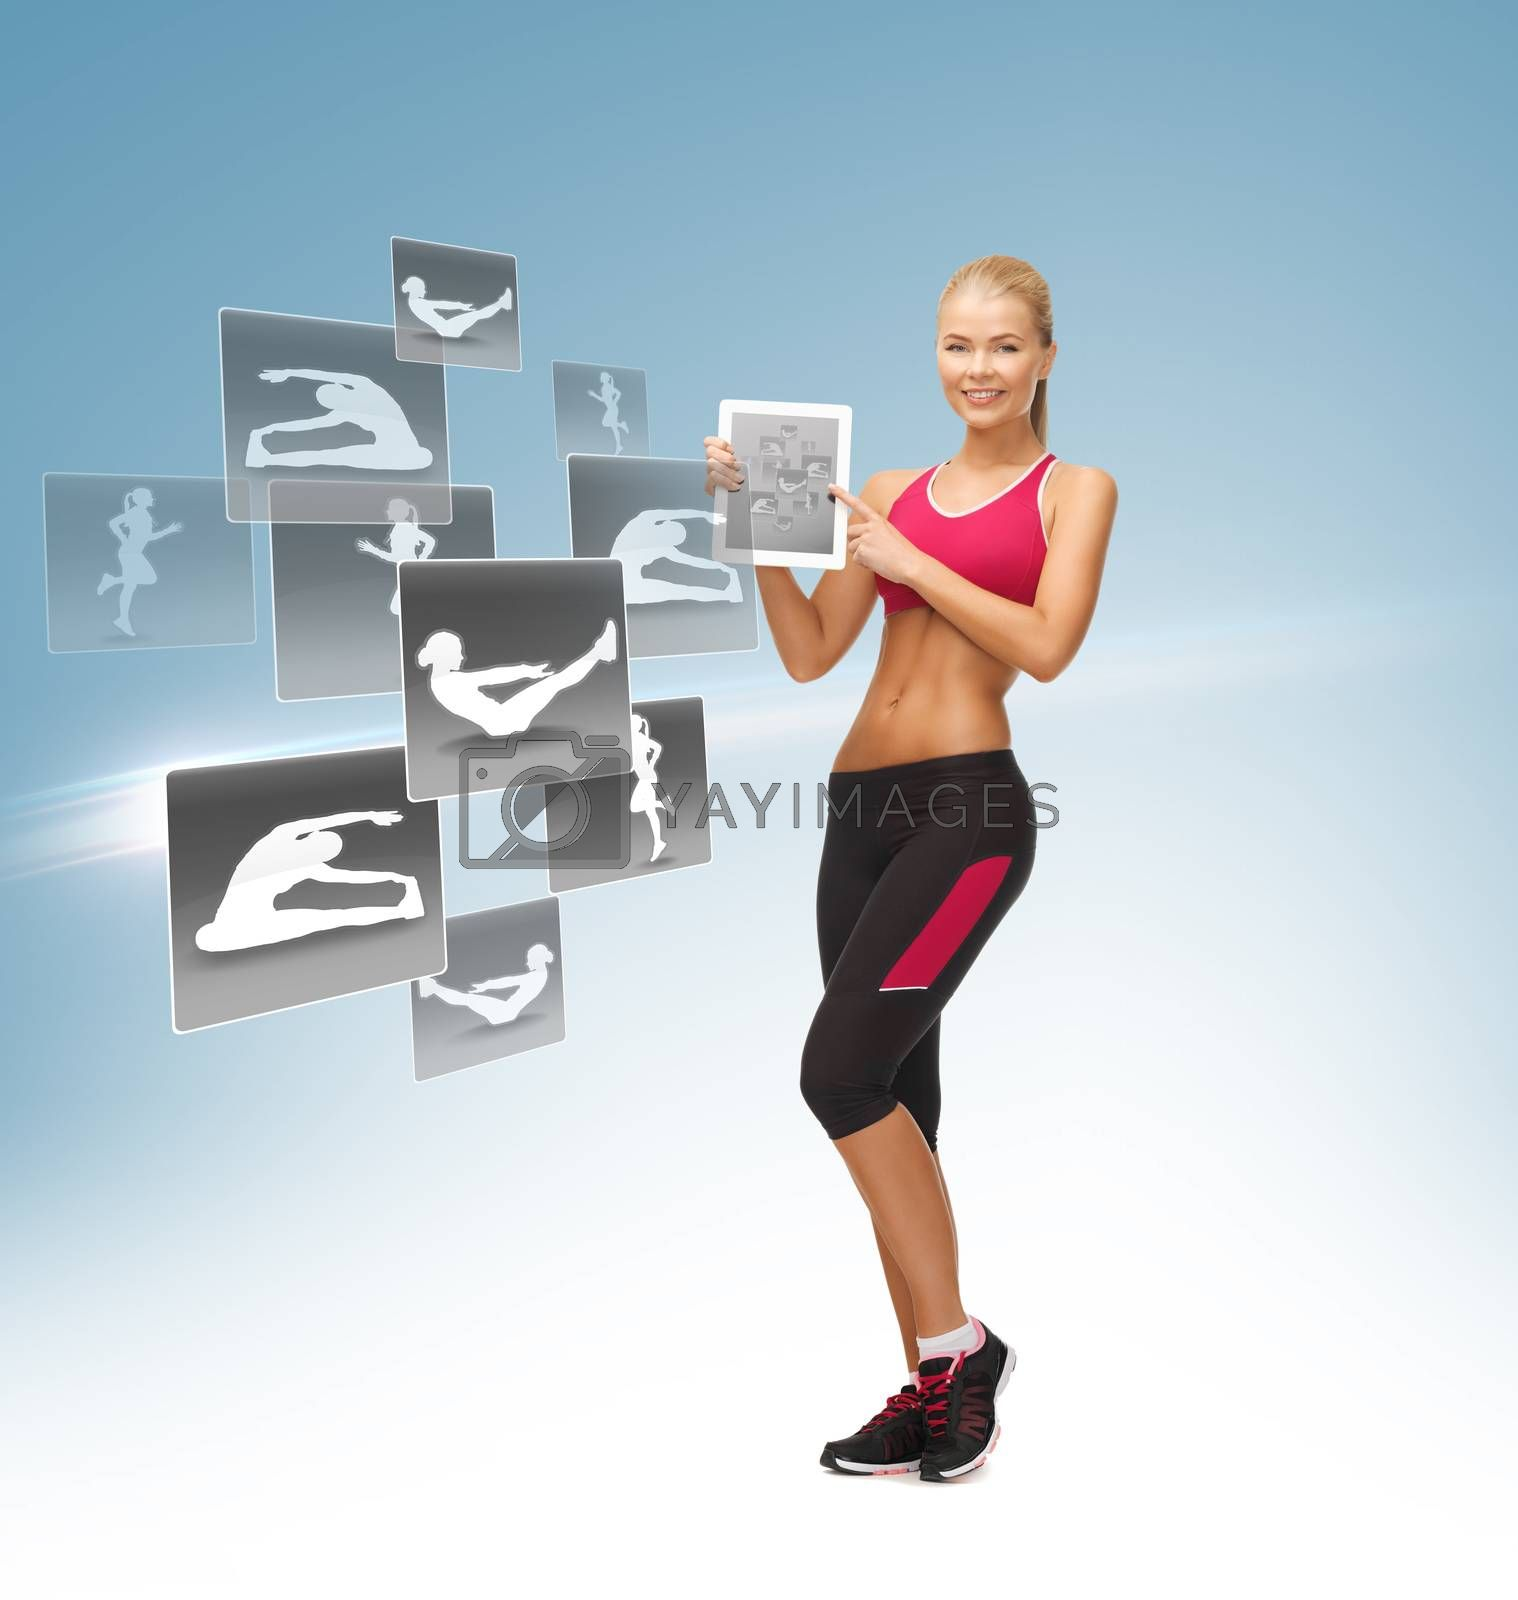 woman with tablet pc and virtual application by dolgachov